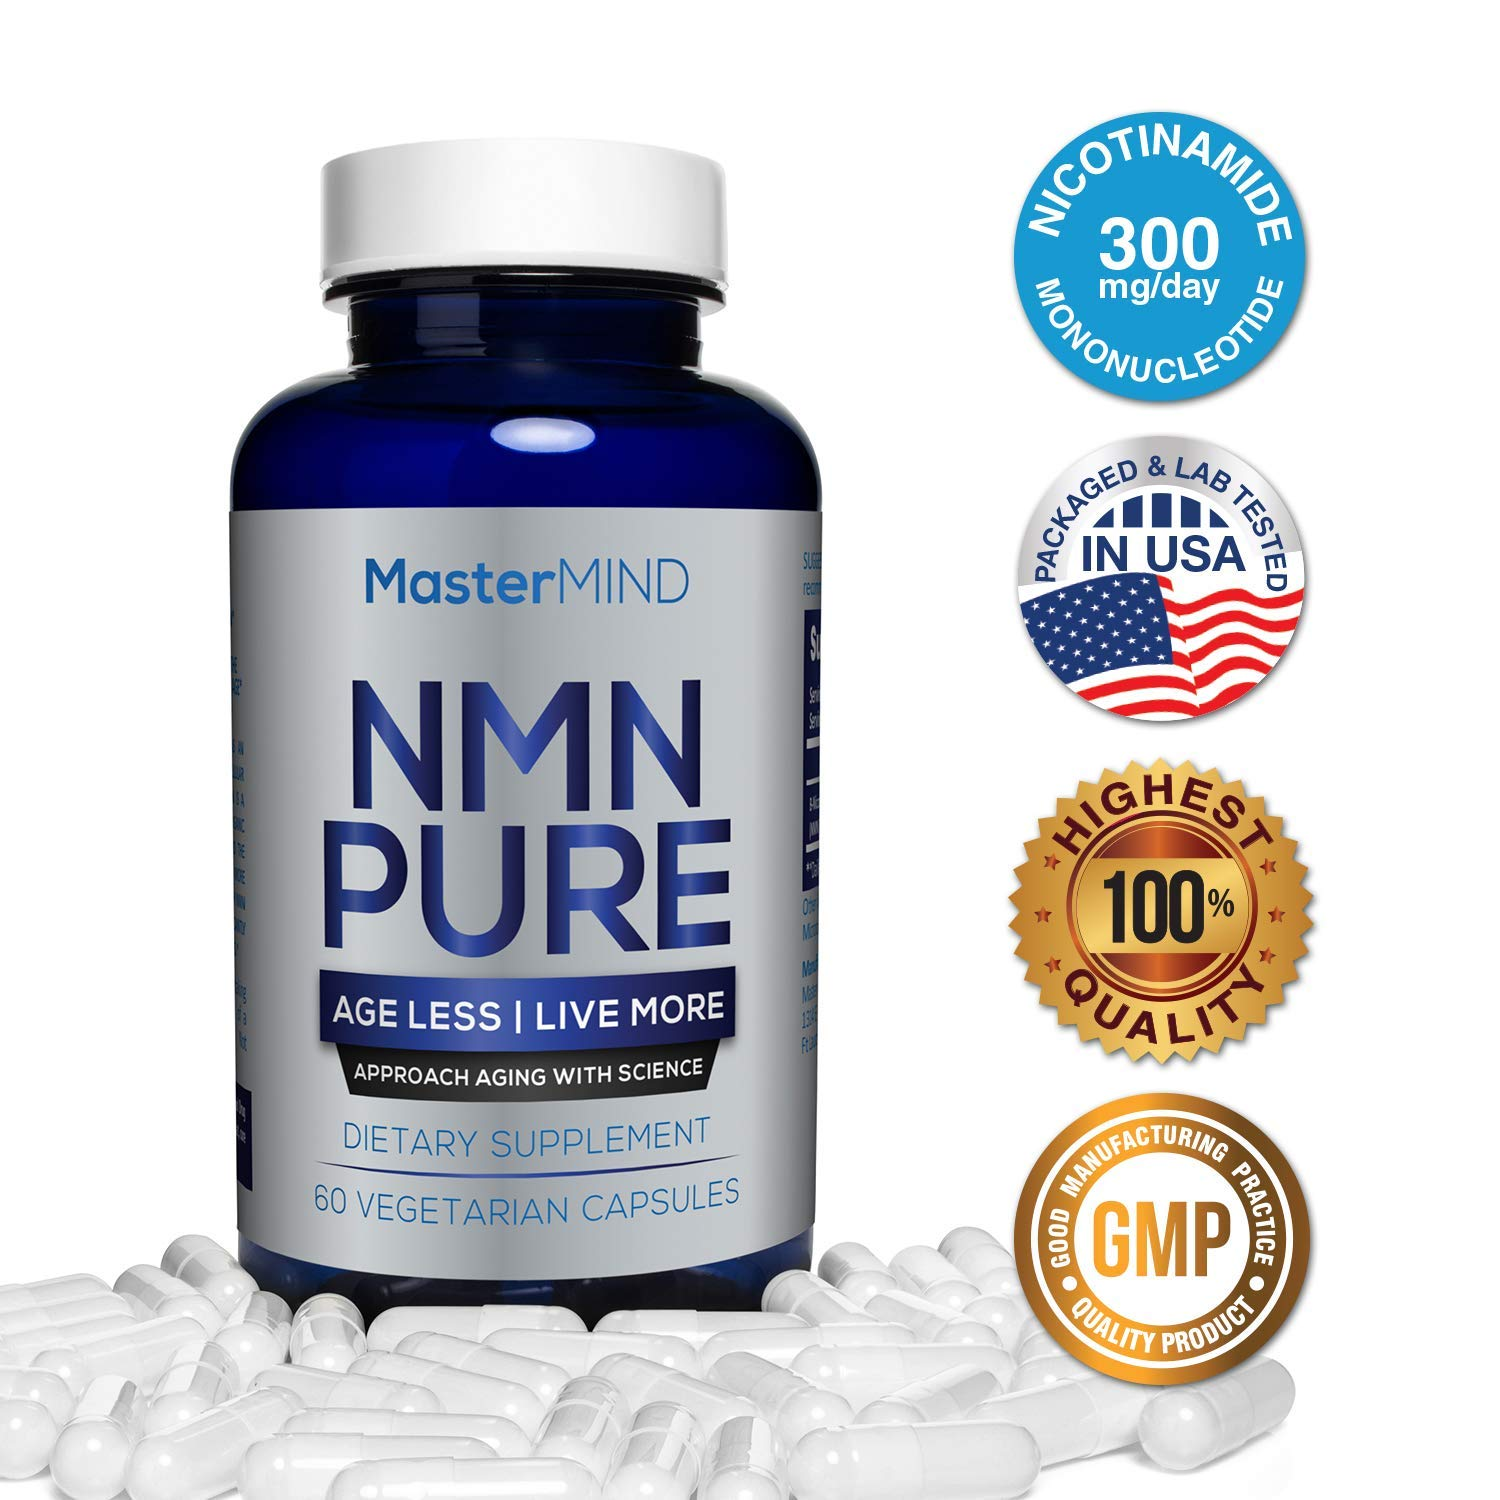 NMN PURE (300mg) | Nicotinamide Mononucleotide Supplement | NAD Booster & Antioxidant Pills | Boost Energy, Metabolism, Anti Aging, Muscle Recovery, Brain Focus & Reduce Stress + Anxiety I 60 Capsules by MasterMind Labs